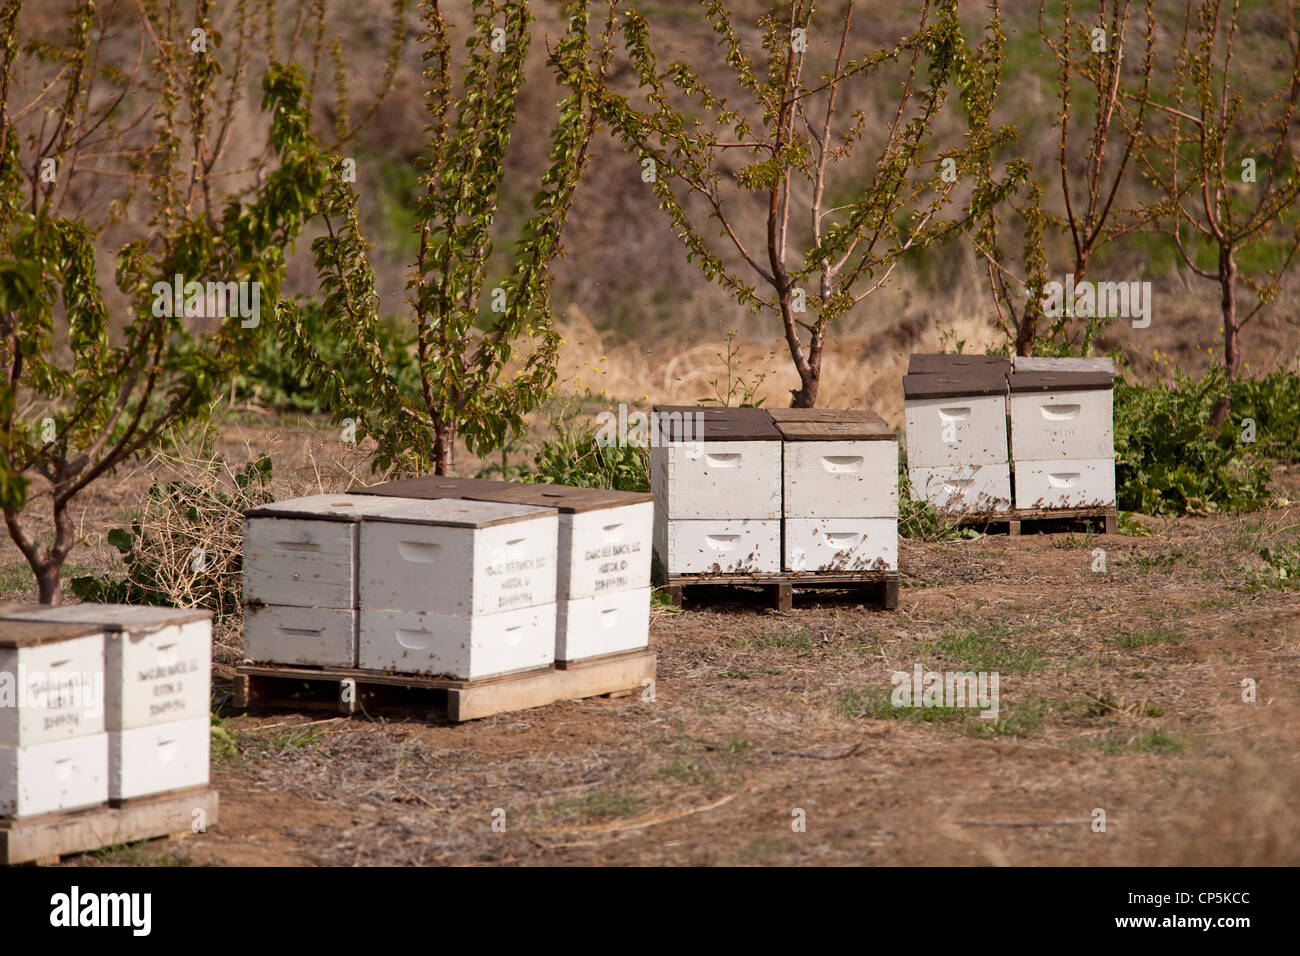 Commercial wood beehives on farm - Stock Image